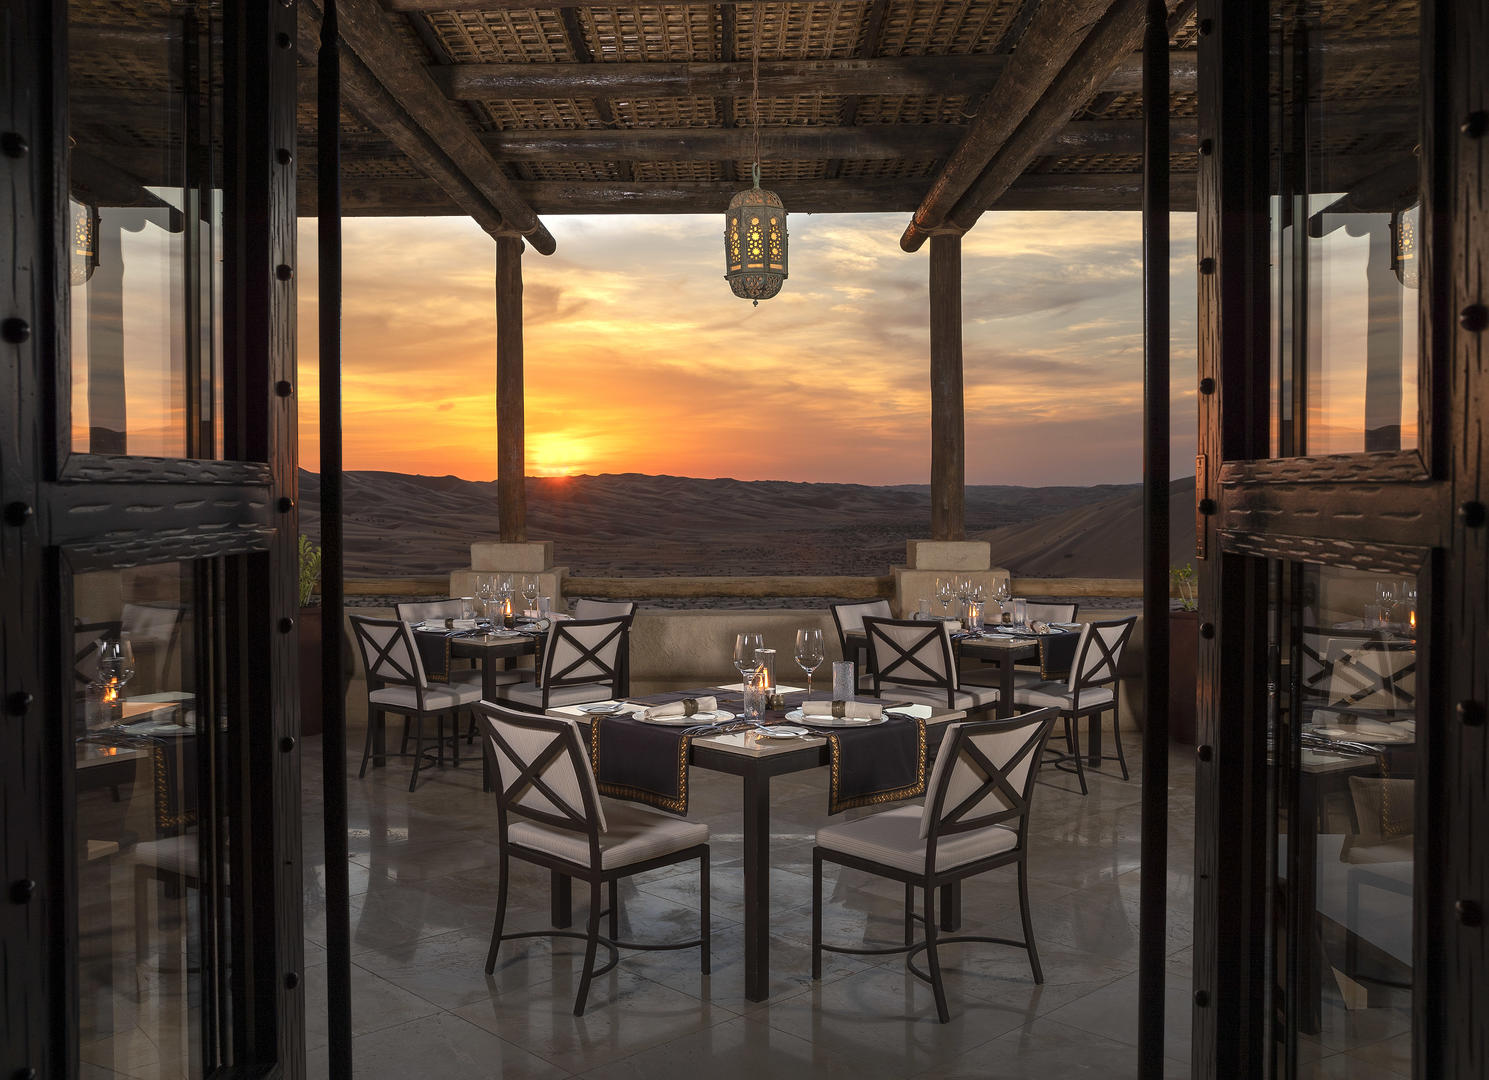 Qasr_Al_Sarab_Desert_Resort_by_Anantara_Restaurants_Suhail_Outdoor_Terrace_Sunset